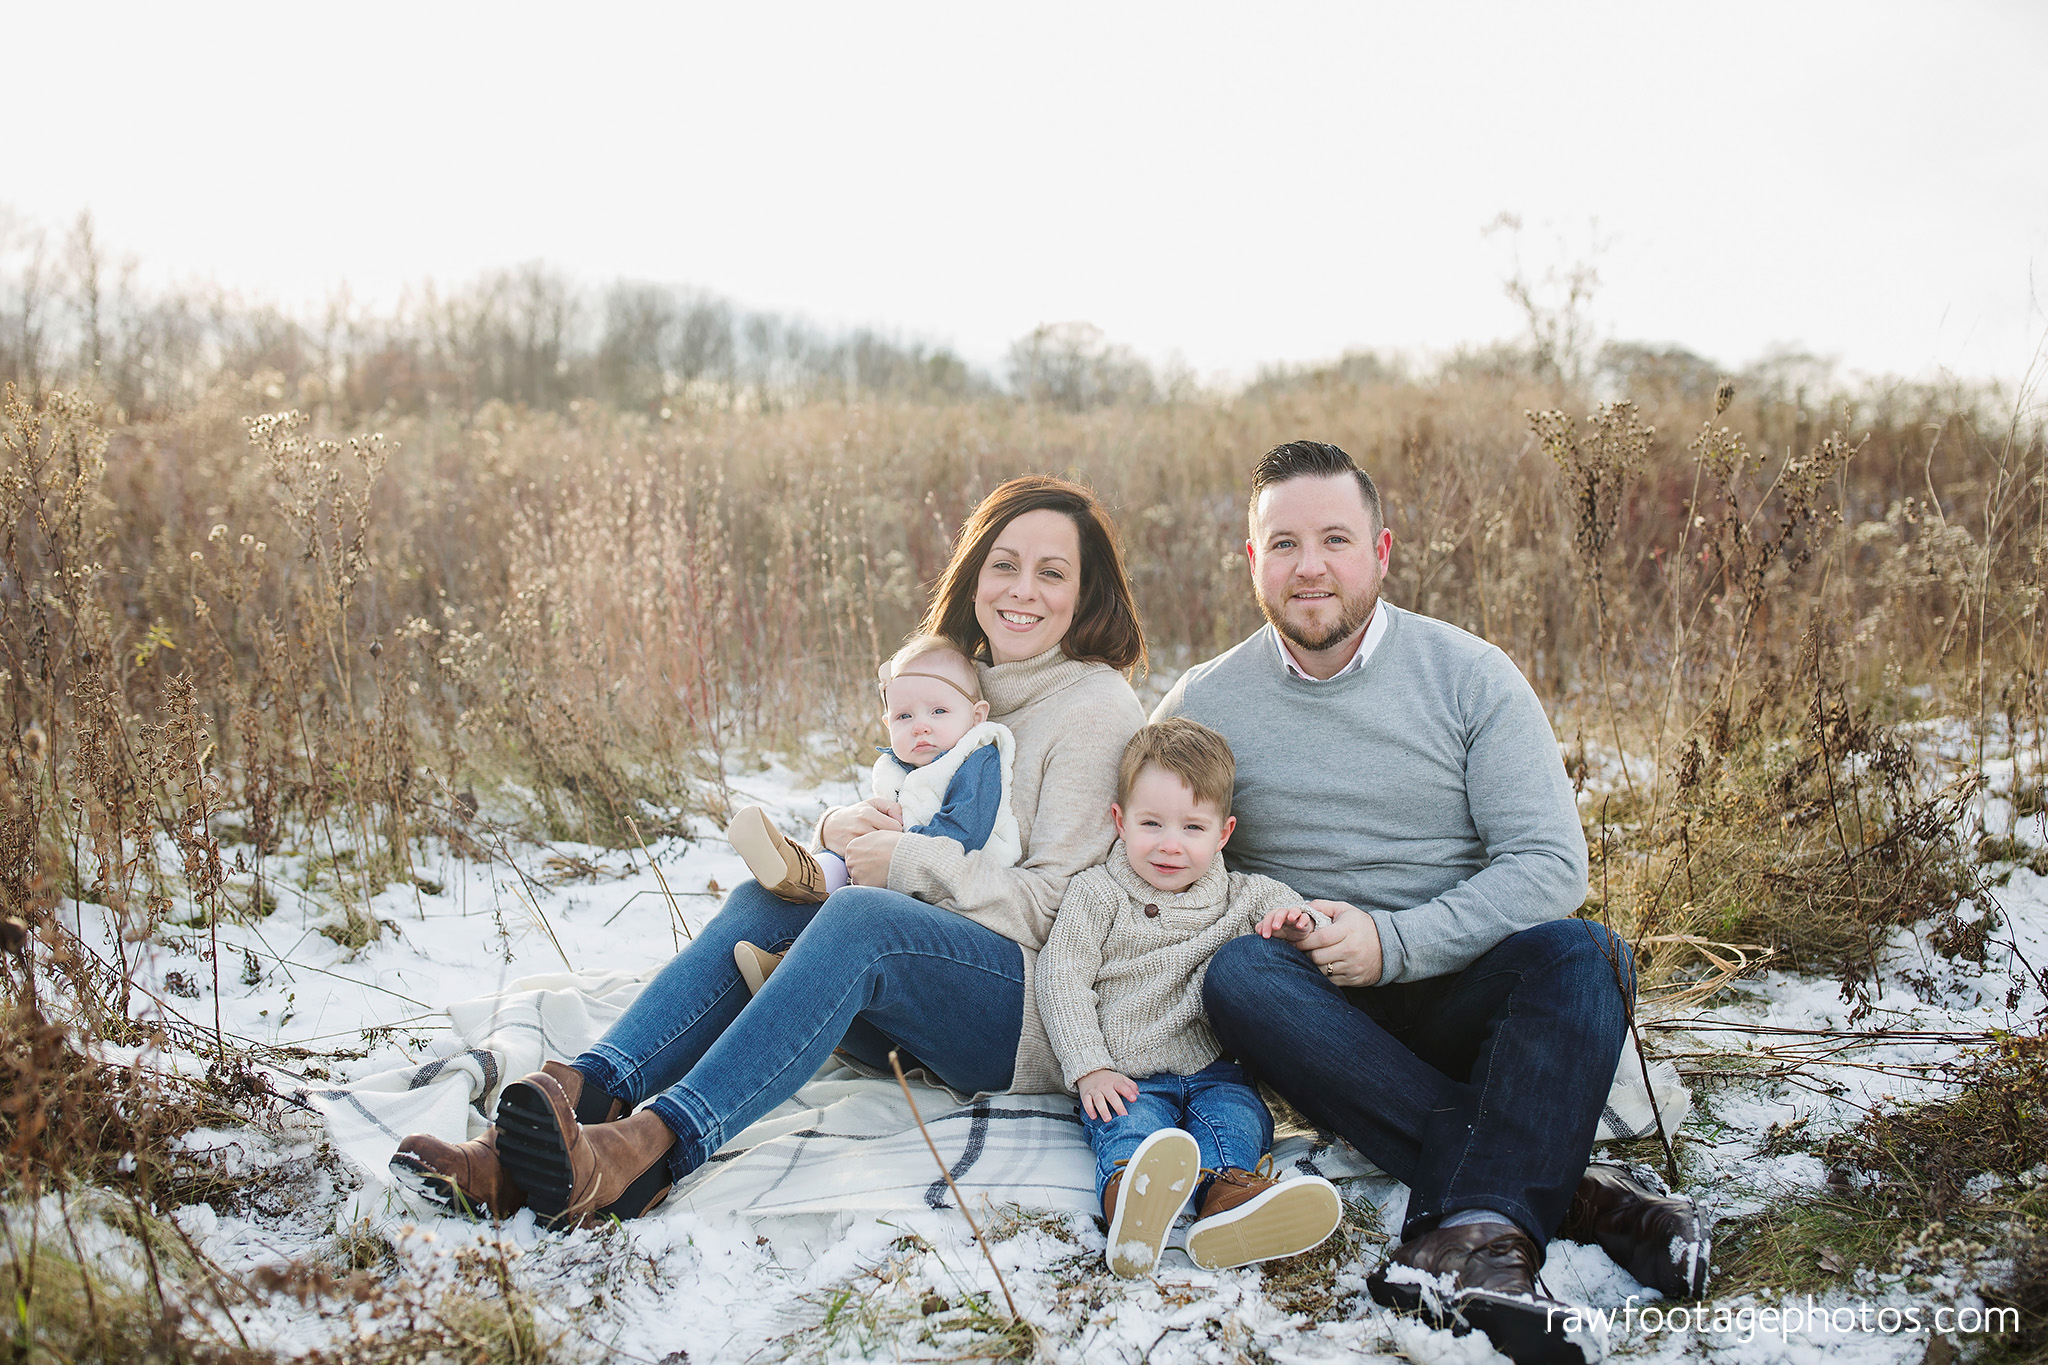 london_ontario_family_photographer-greenhouse_photos-winter_field_photos-raw_footage_photography003.jpg